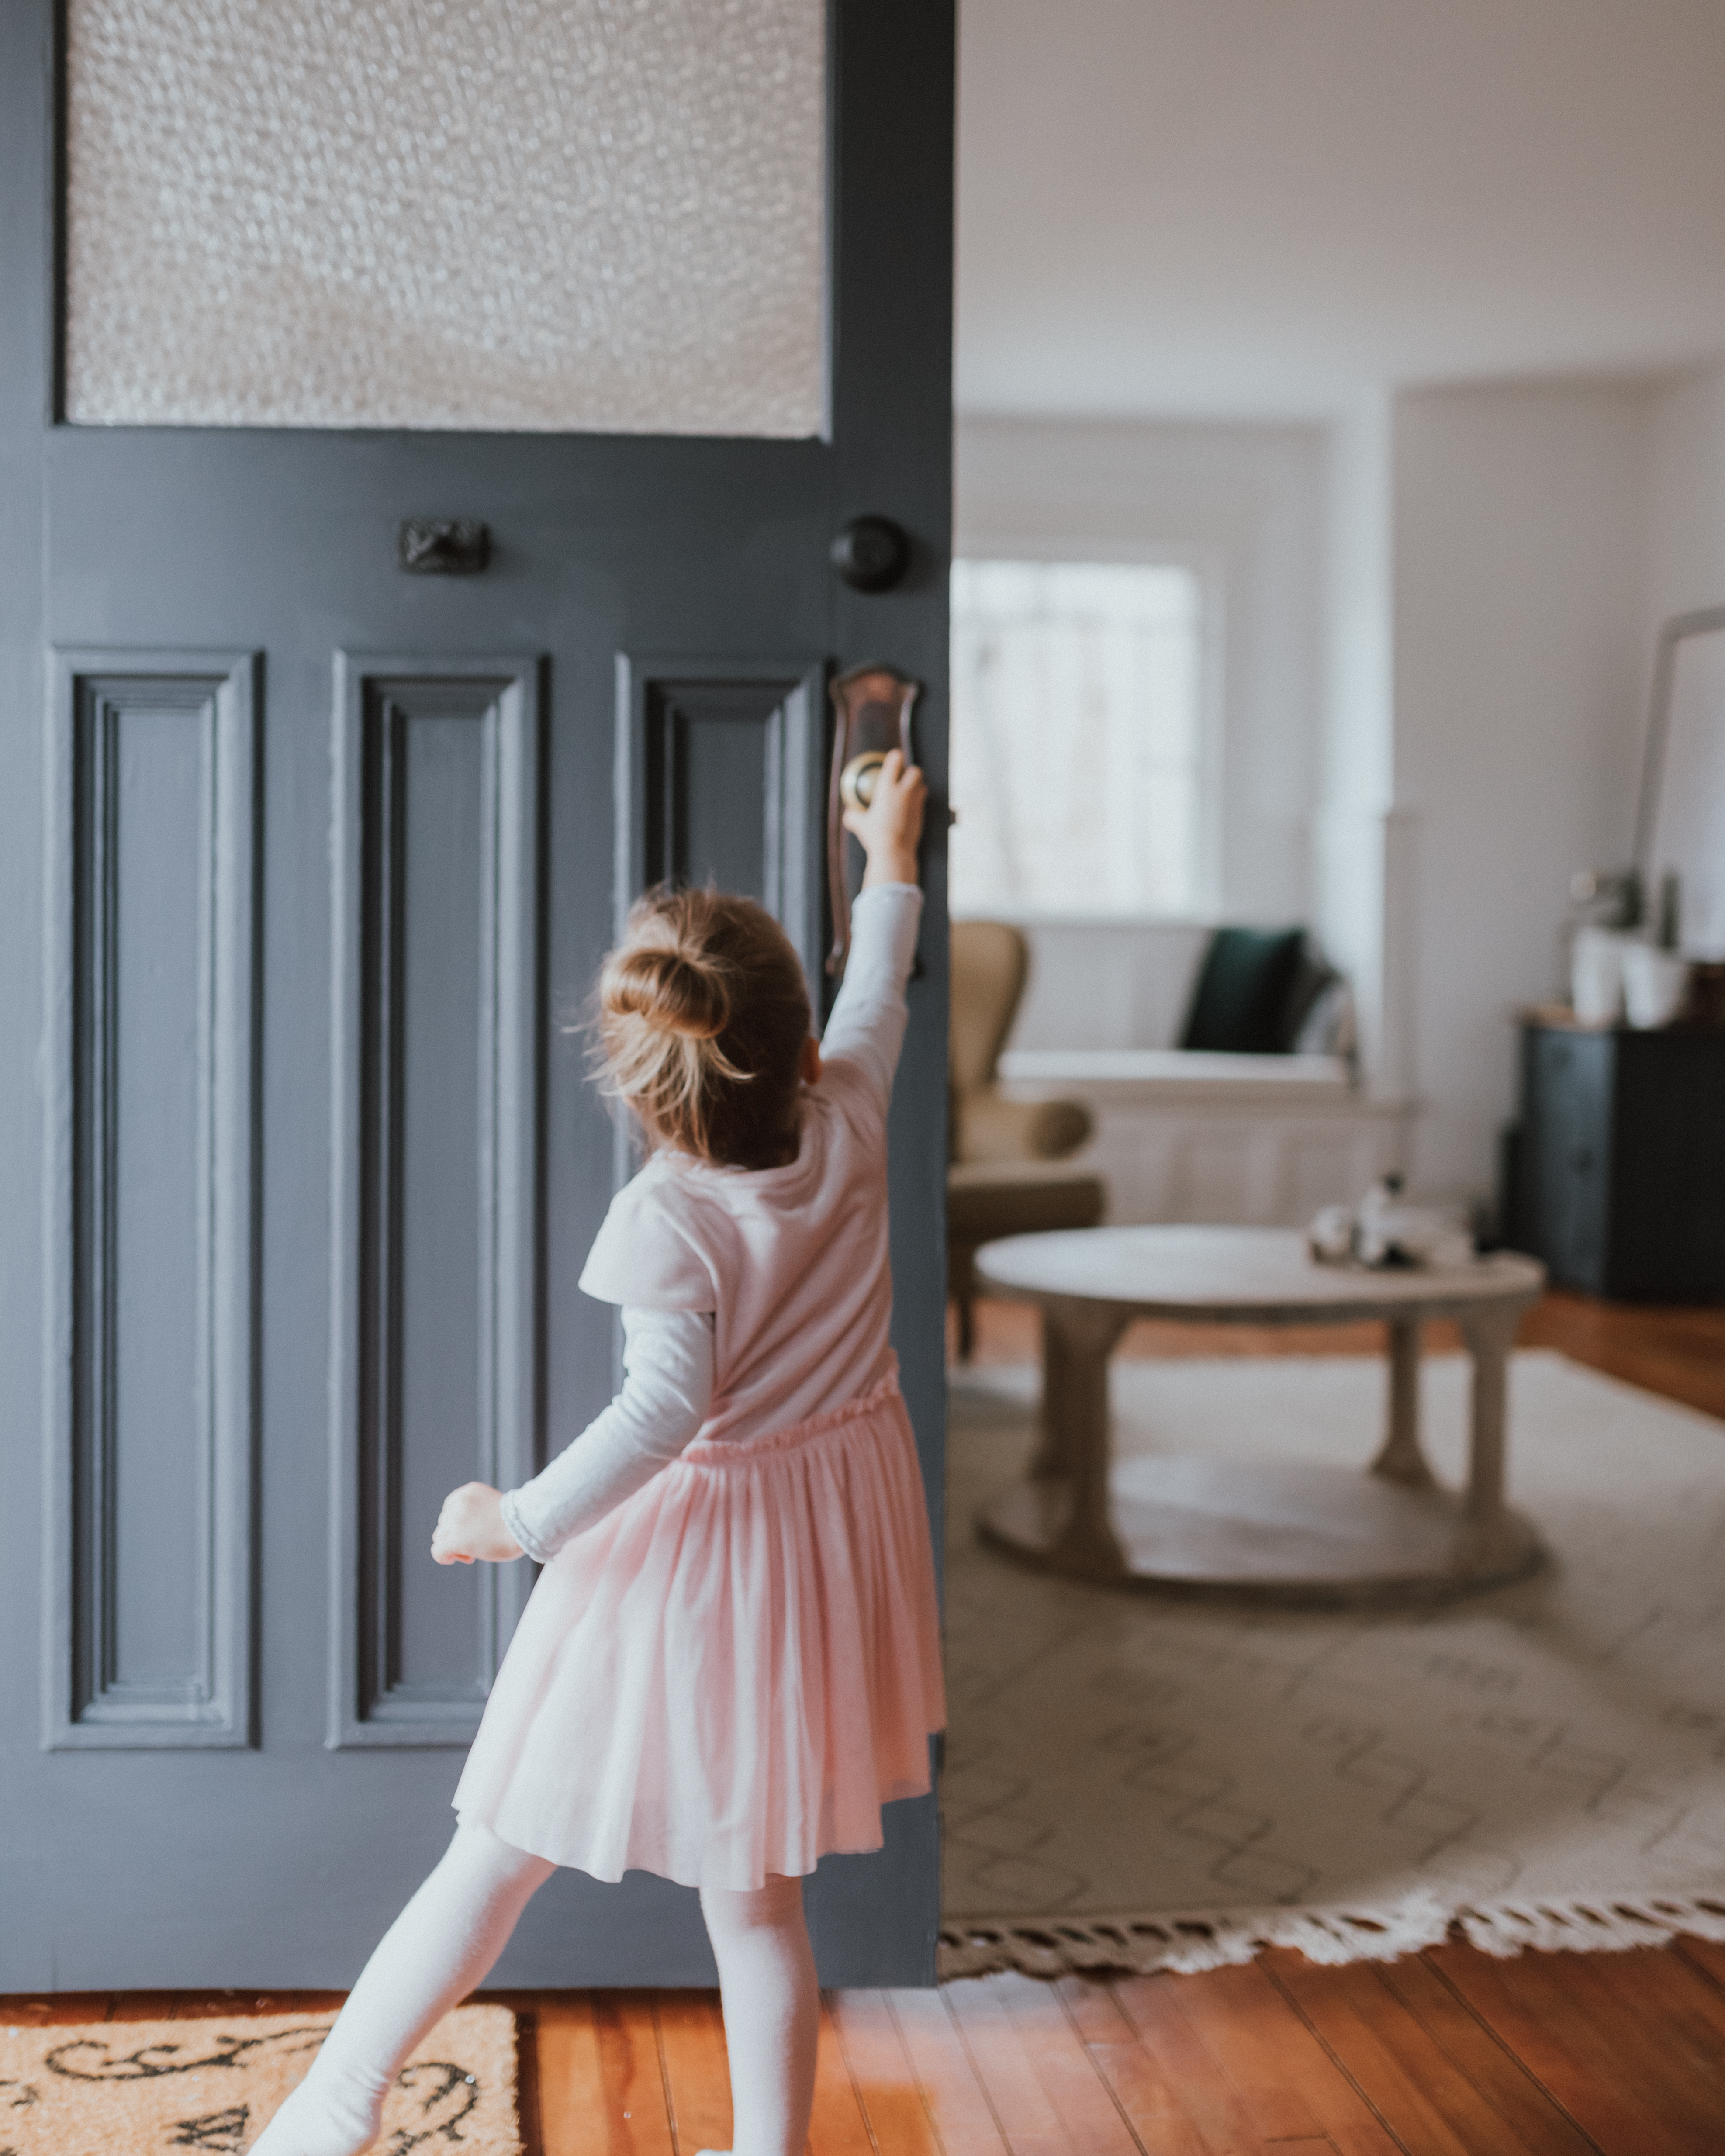 The Wild Decoeli's | The Ease Of Keyless for Families | Our Keyless Smart lock for our front door| August smart lock doesn't ruin the facade